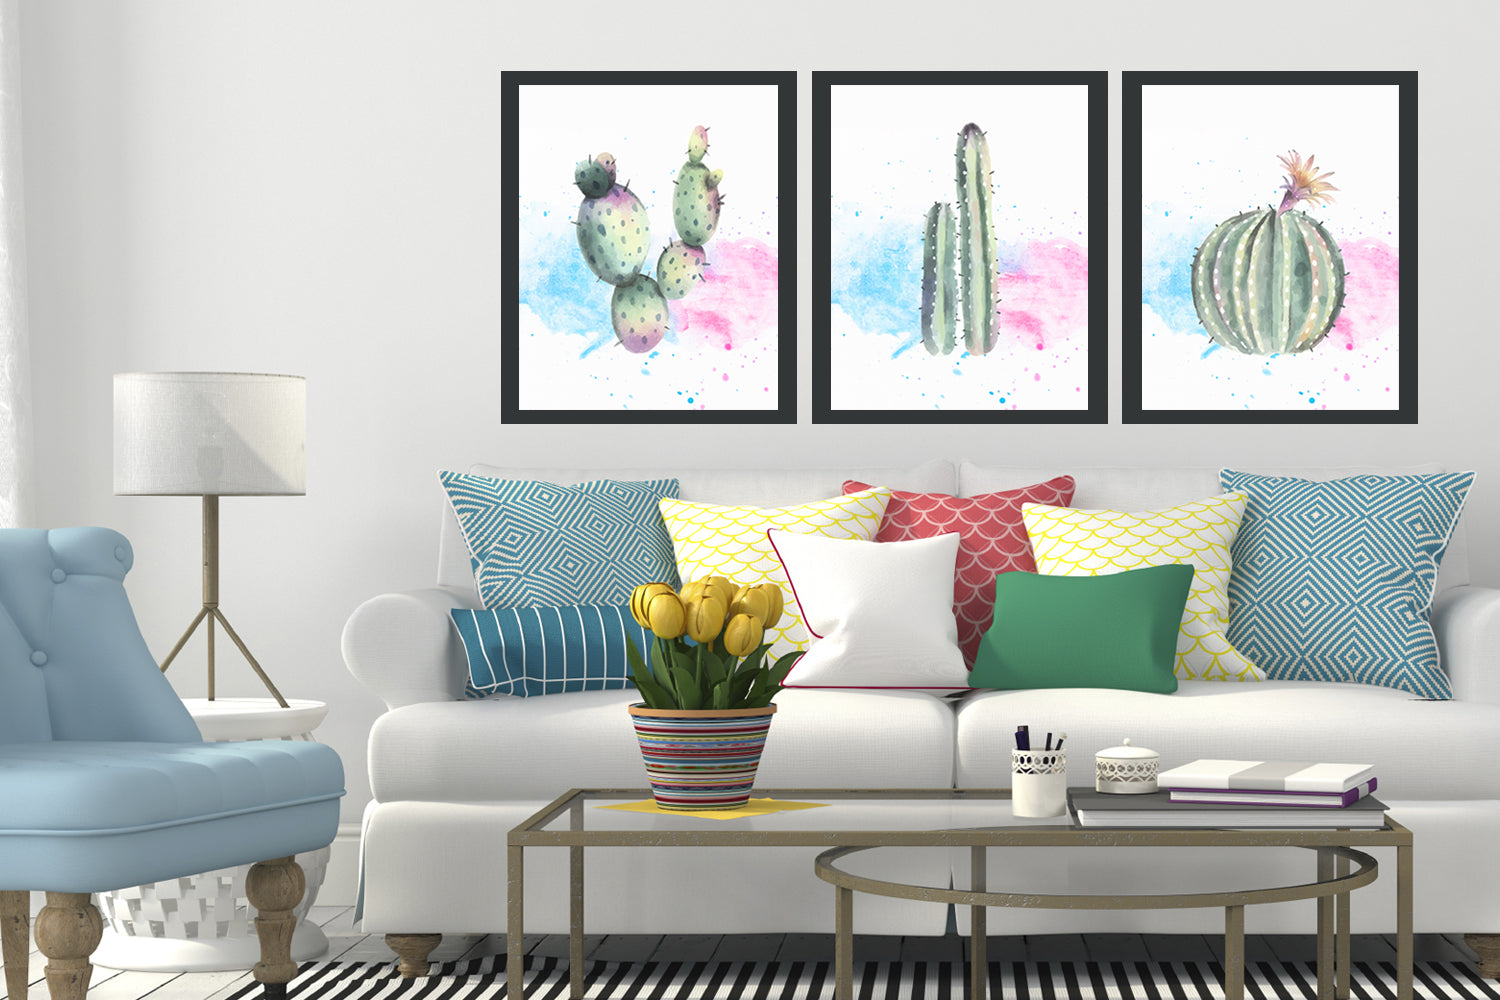 3 styles of Cactus canvas designs, Cactus decor, Cactus printable set, Pastel cactus art, Digital art prints,